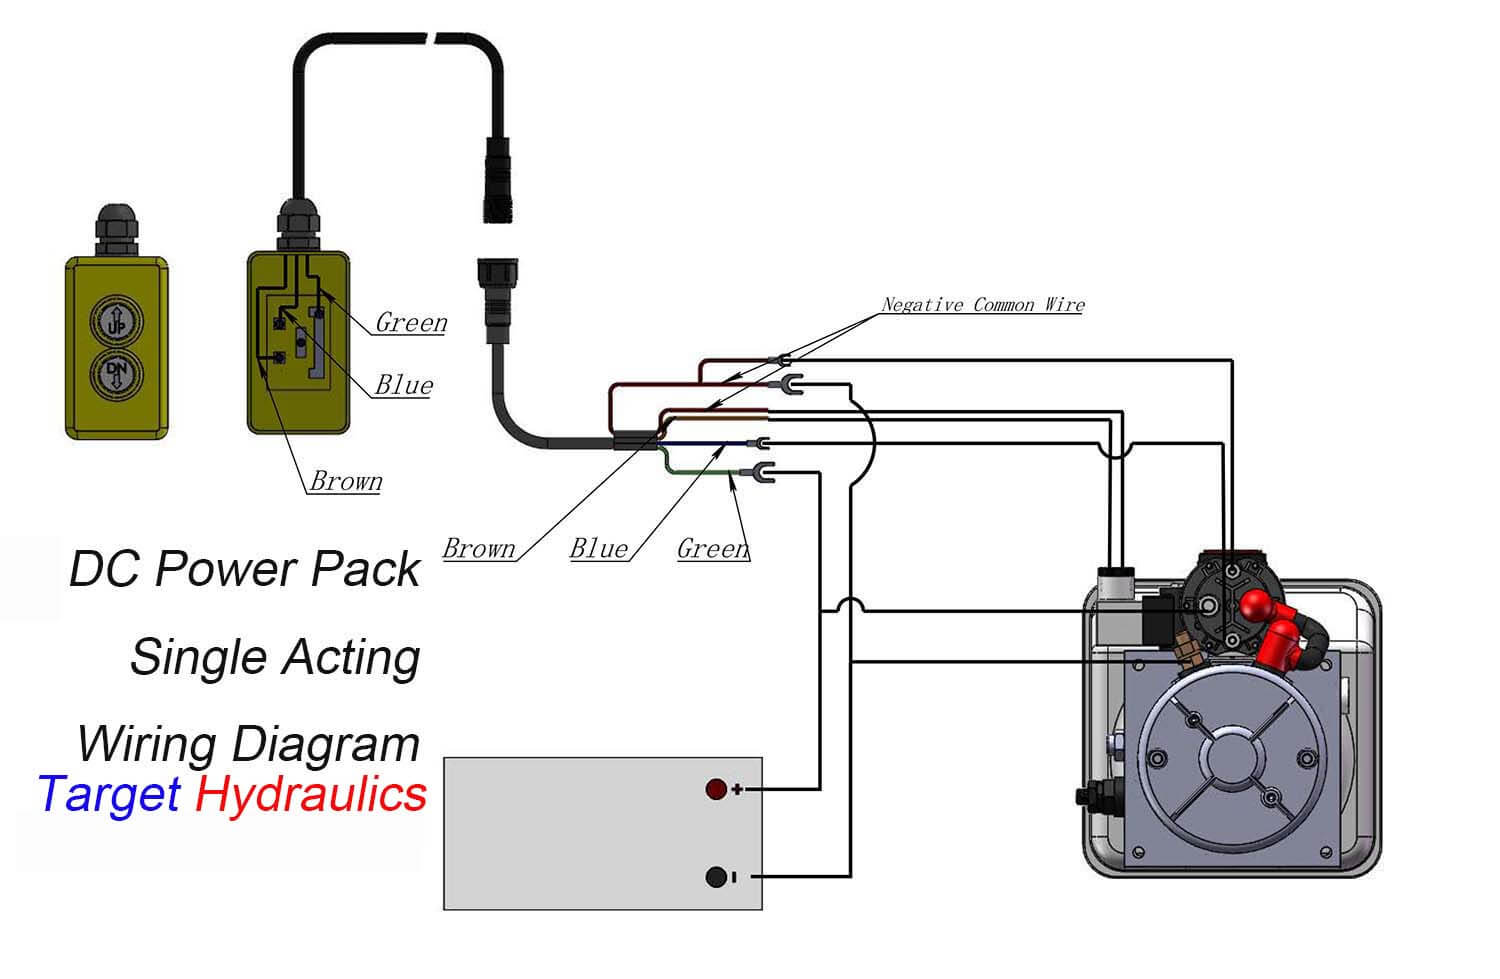 electric range wiring diagram for brown with How To Wire Hydraulic Power Pack Unit on How To Wire Hydraulic Power Pack Unit additionally Faculty additionally 317993 94 Sportsman 400 Wiring Diagram together with Install Shower Extractor Fan besides 8r5qa Kevin Ok Add Second Gfci Outlet Use.